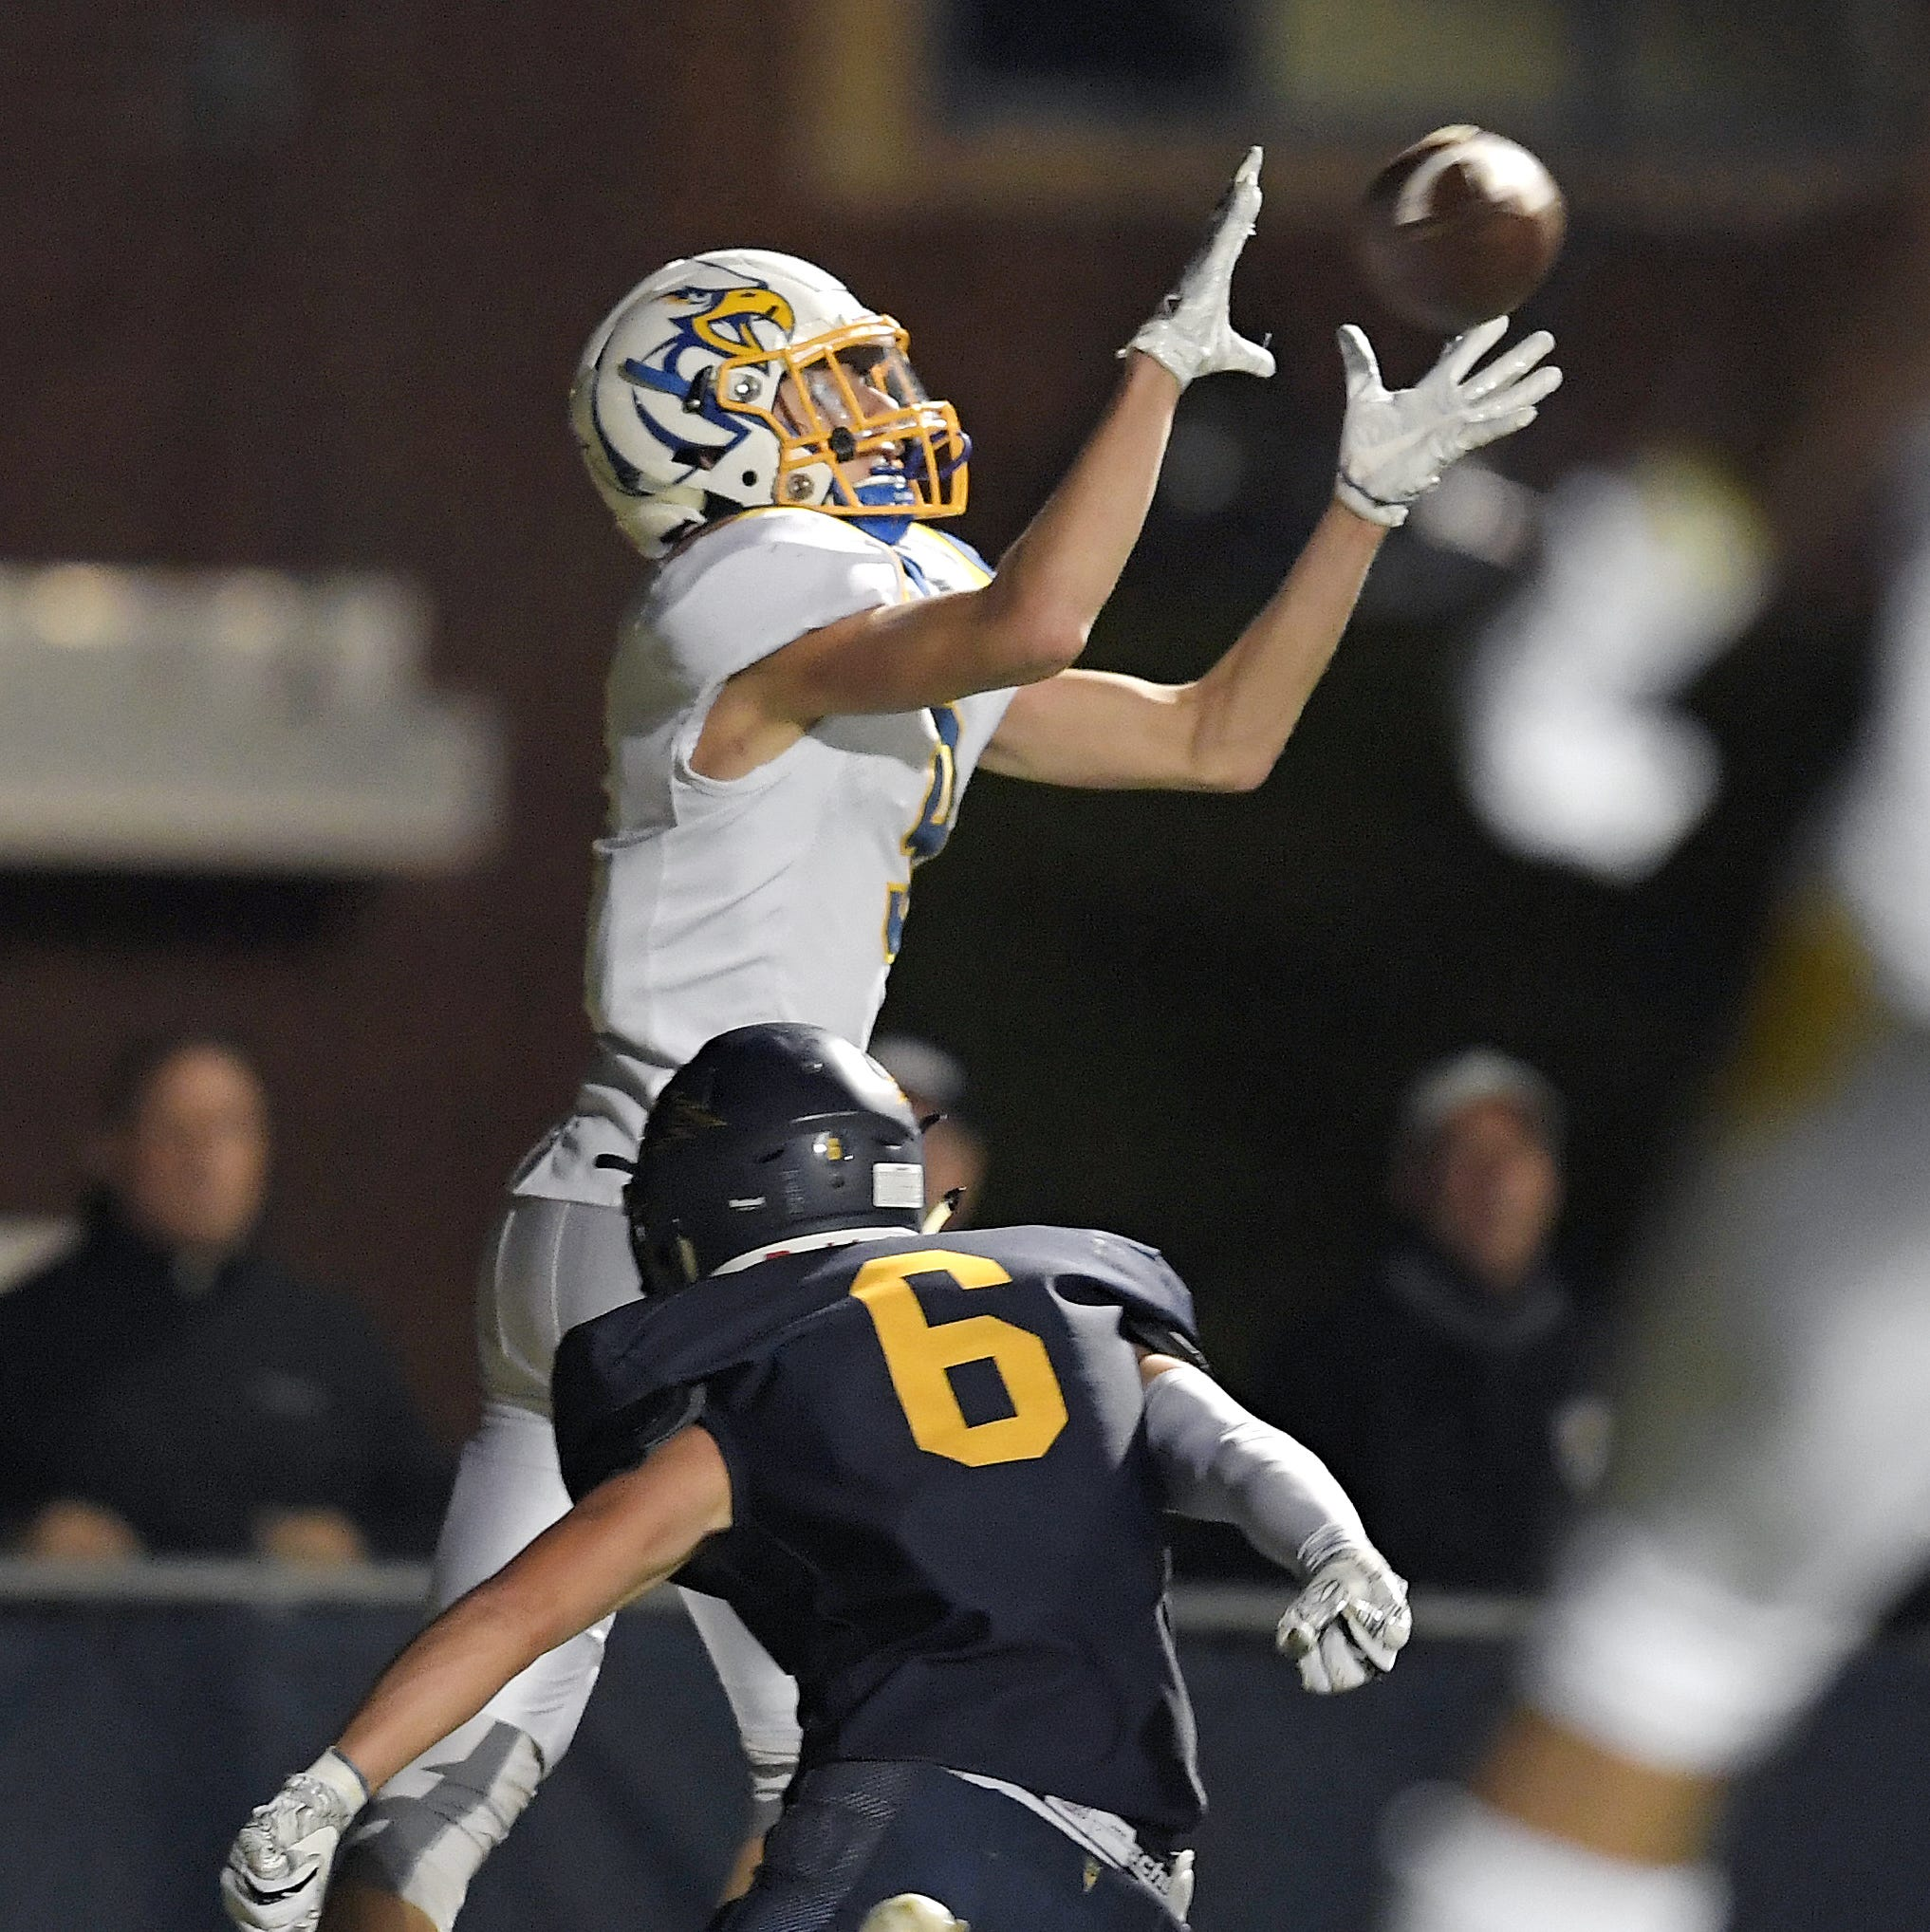 Irondequoit's Quinn Simonson, top, catches a touchdown pass over Victor's Timmy Keohane for a 21-14 lead Sept. 23, 2018.